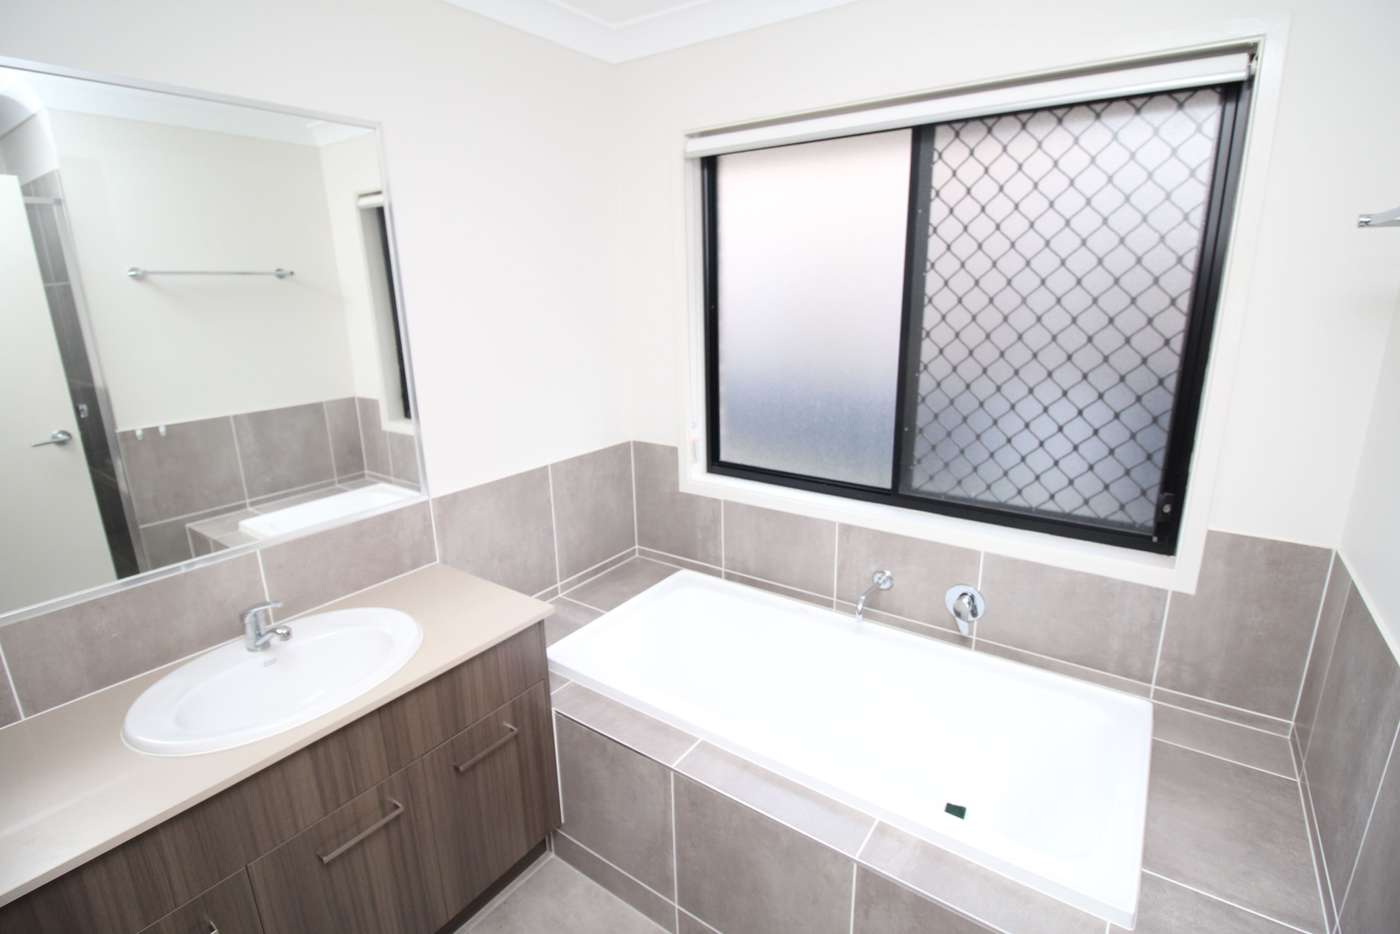 Sixth view of Homely house listing, 205 CANVEY Road, Upper Kedron QLD 4055